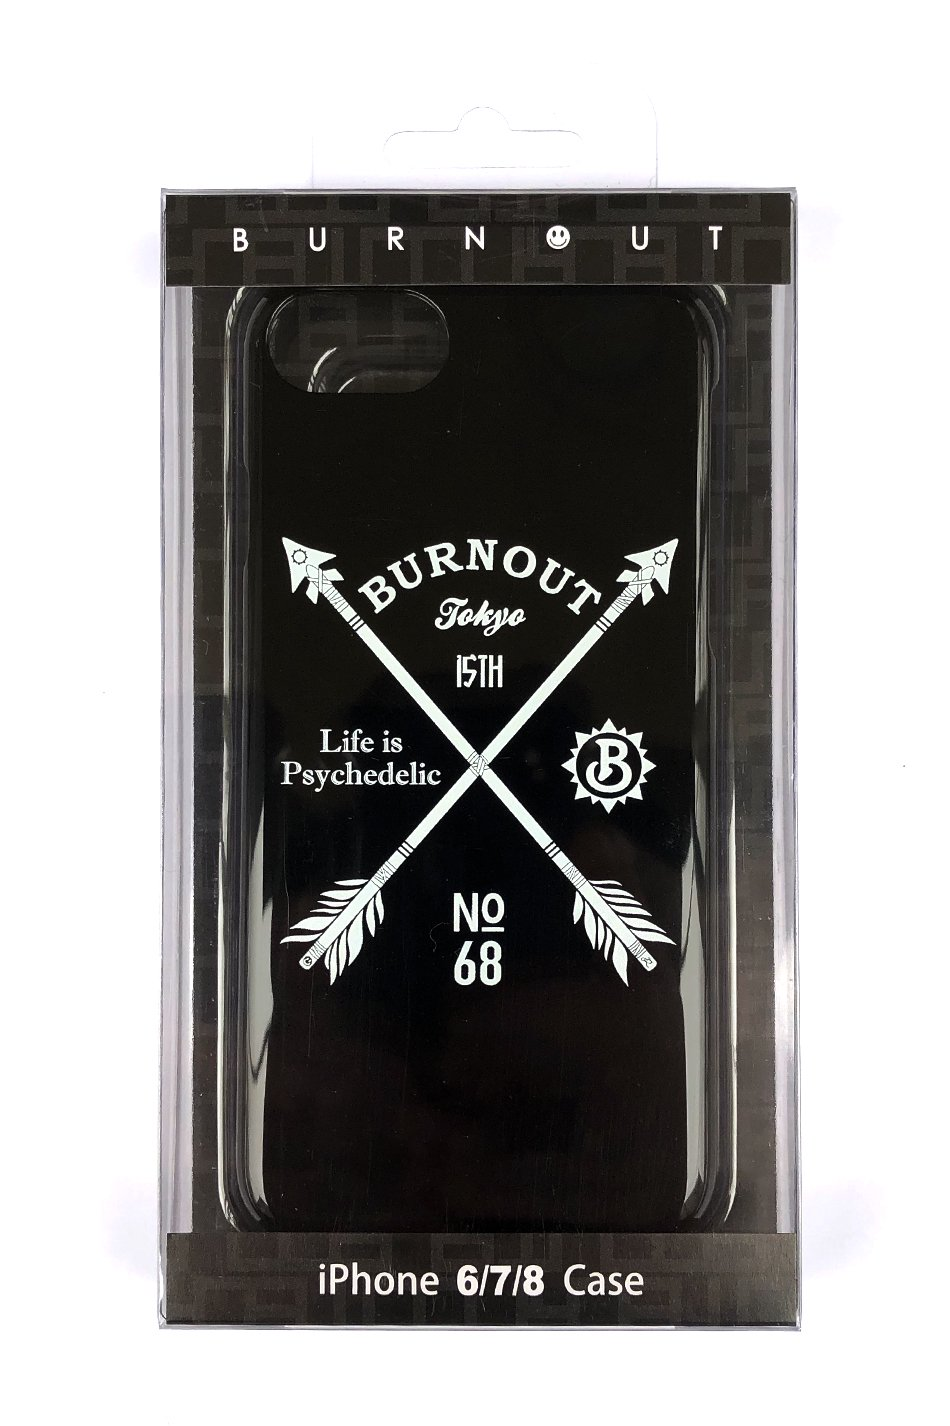 Burnout(バーンアウト)15th Anniversary iPhone Case / Black<img class='new_mark_img2' src='//img.shop-pro.jp/img/new/icons5.gif' style='border:none;display:inline;margin:0px;padding:0px;width:auto;' />